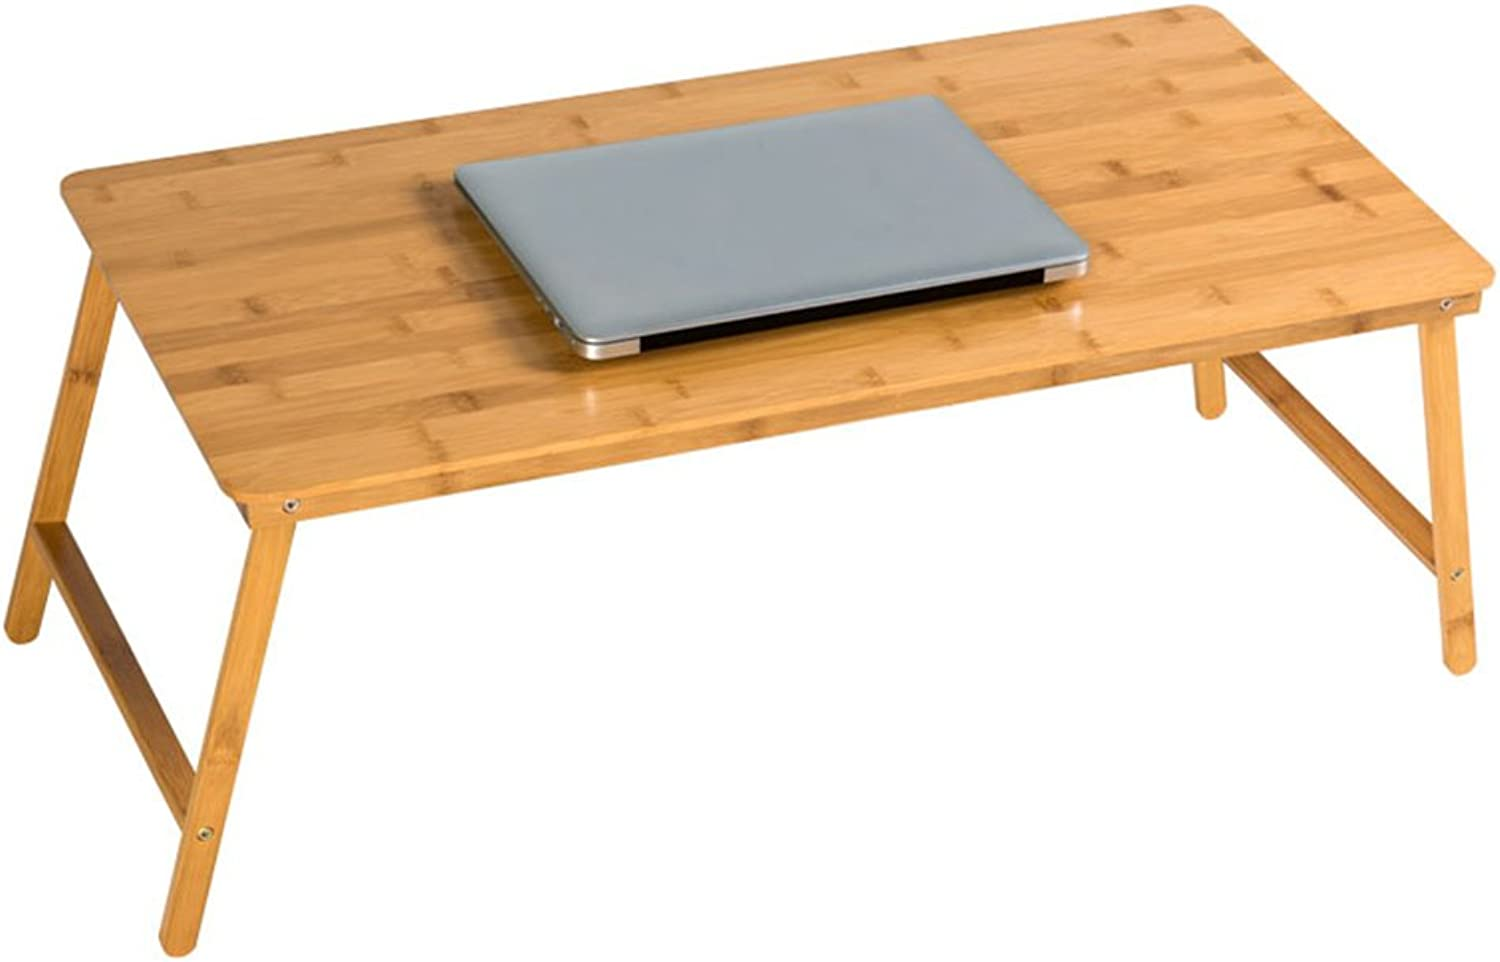 ZXQZ zhuozi Folding Laptop Desk Bed with Small Table Dormitory Lazy Simple Desk Learning Table (80cm) Folding Computer Desk